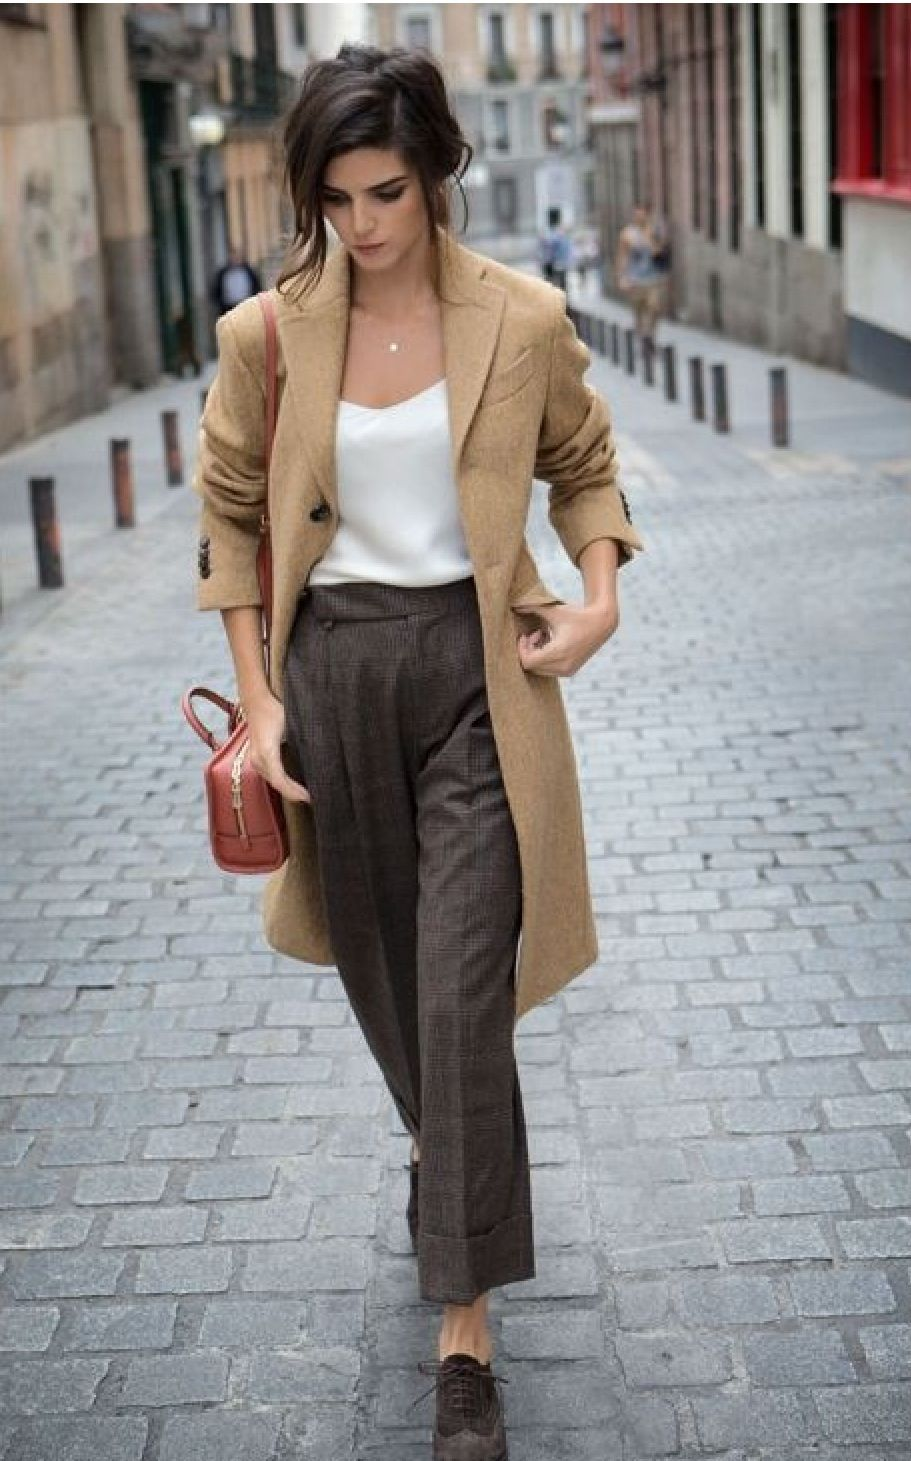 Street Style My Style In My Imaginary Closet Pinterest Street Styles Street And Clothes